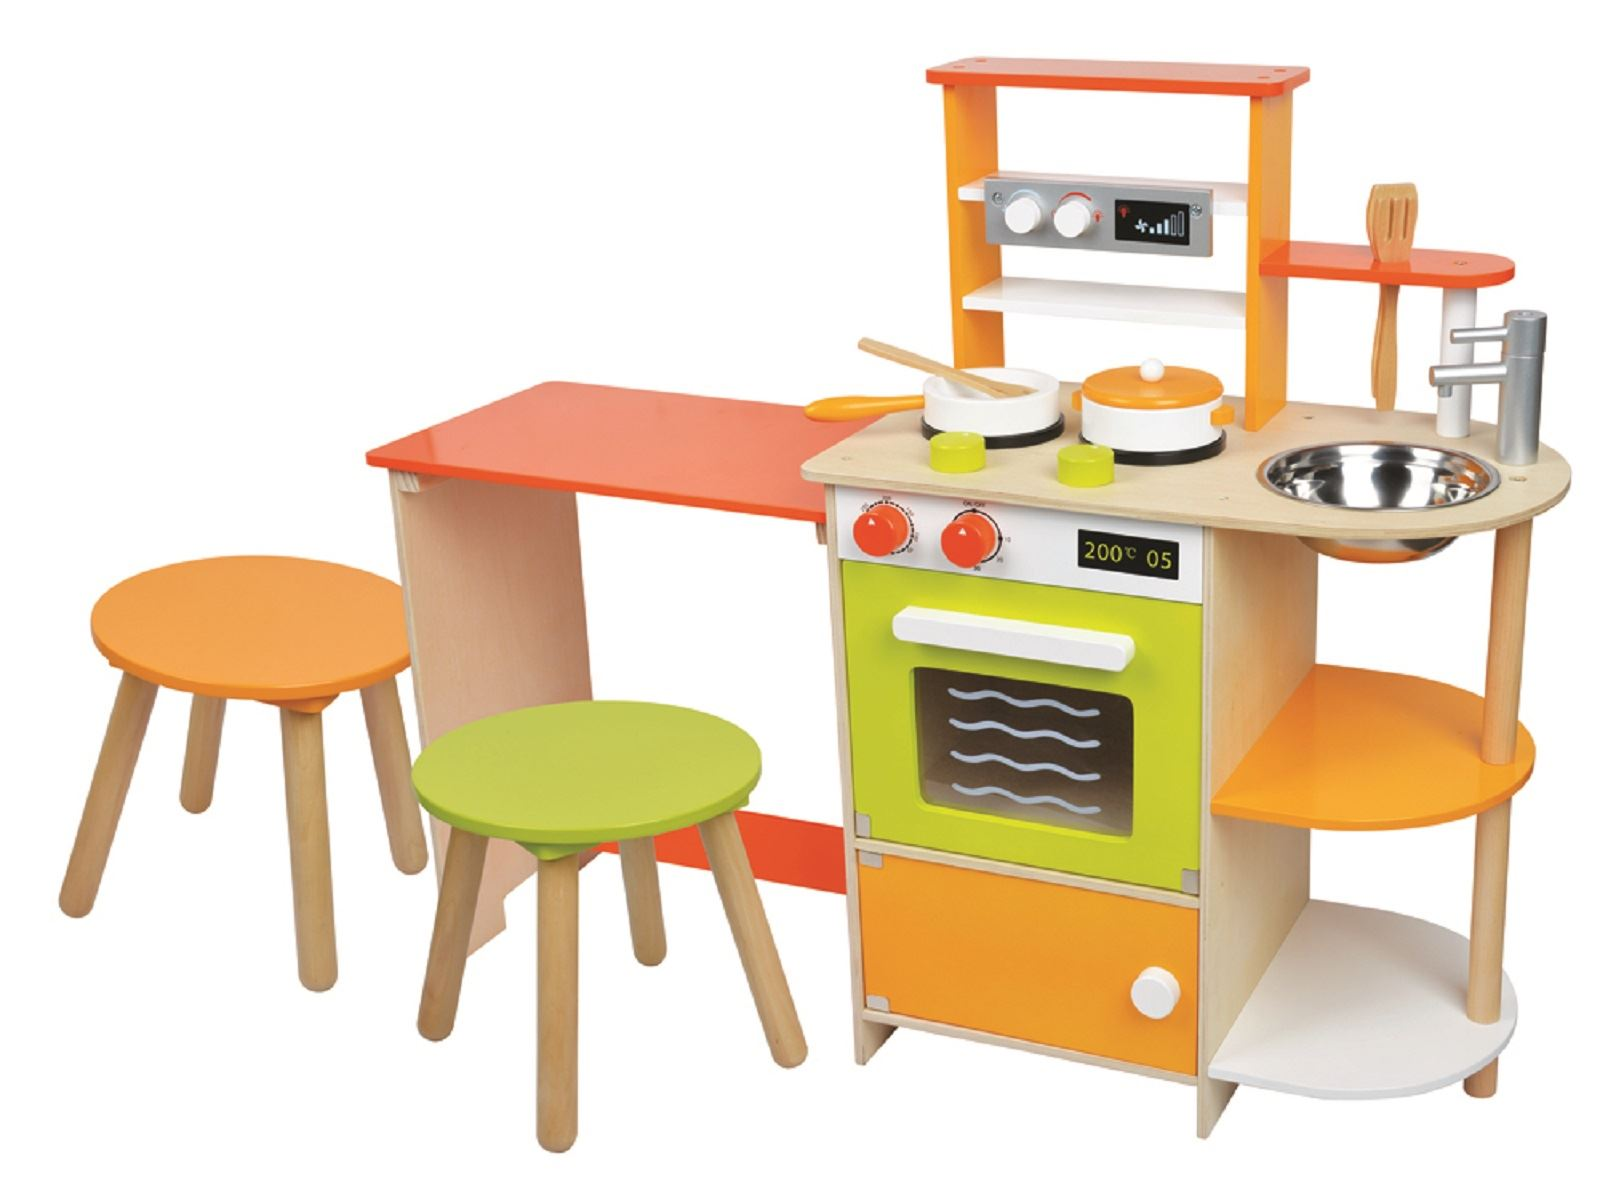 Lelin Wooden Childrens 2 In 1 Pretend Play Kitchen And Dining Room Set Ebay